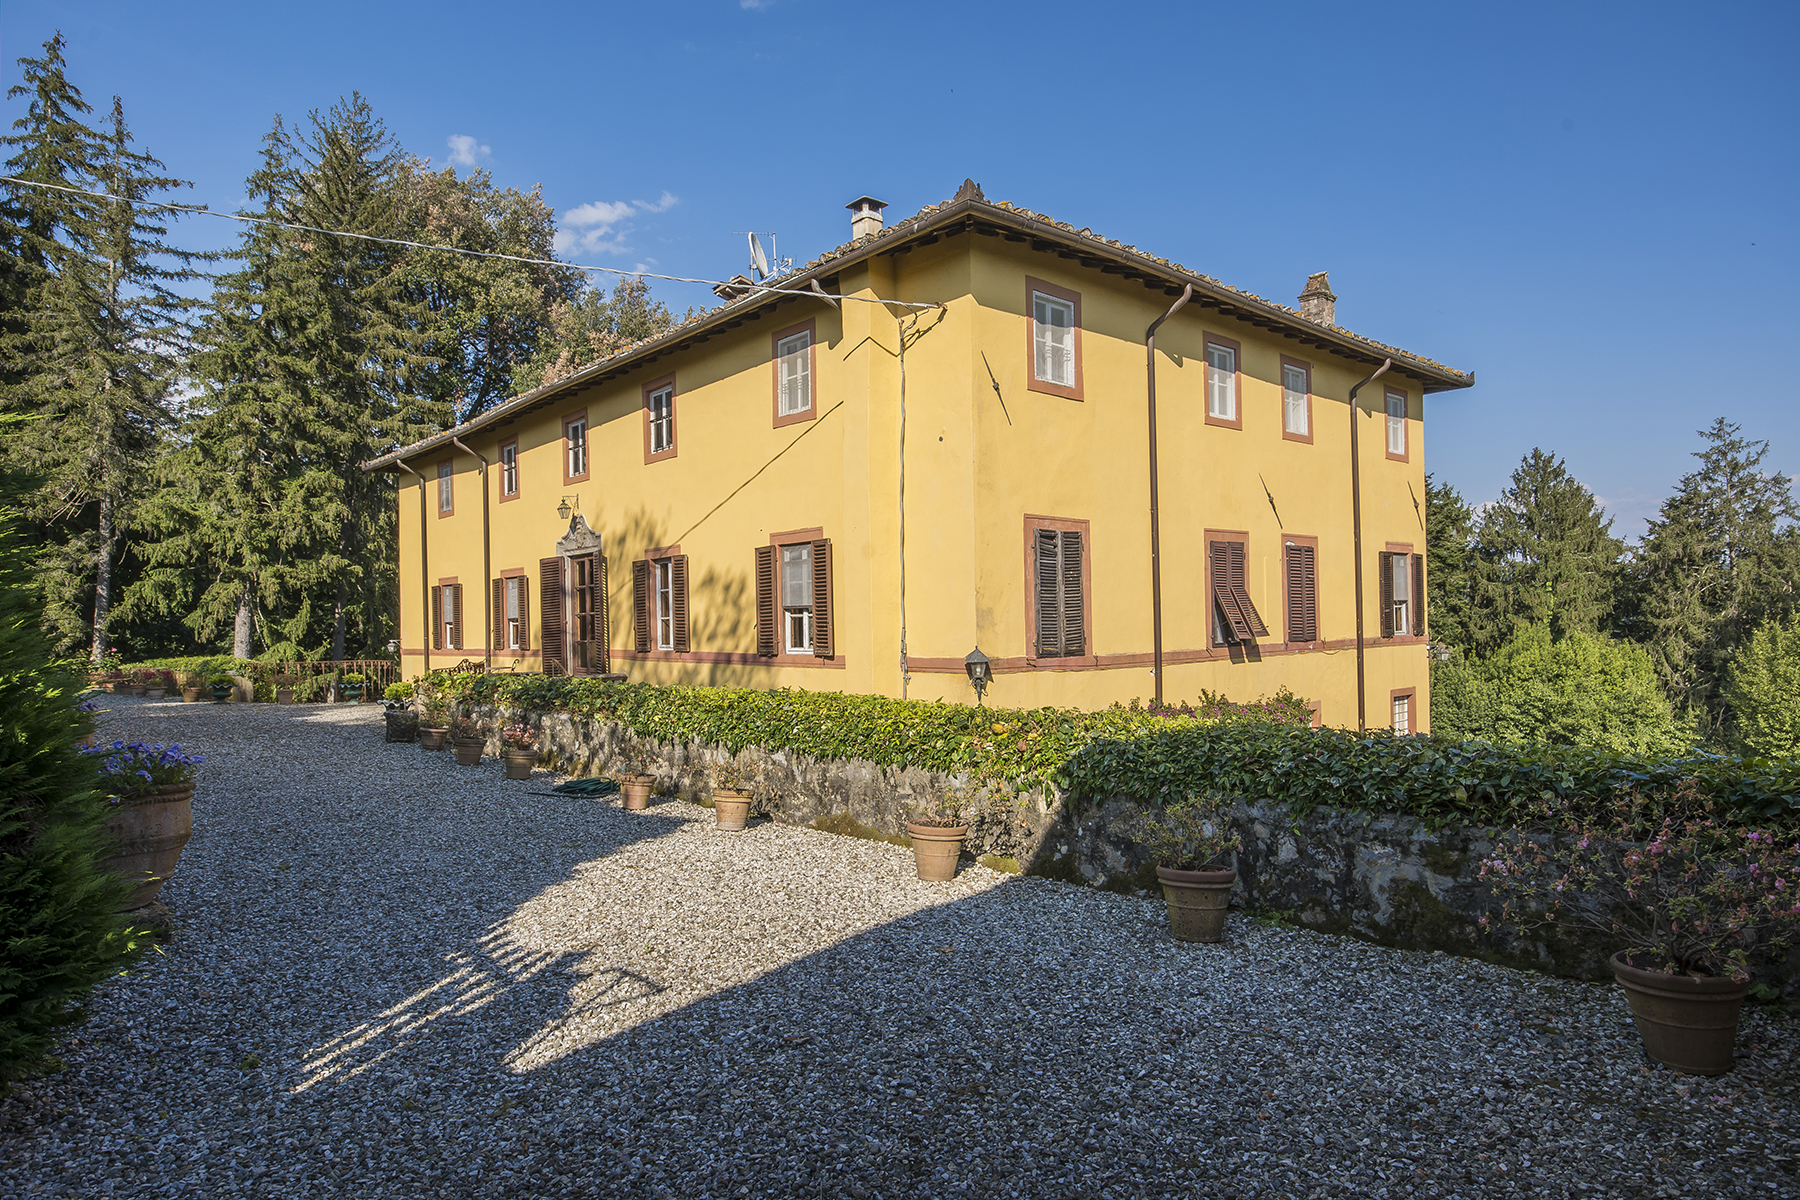 Additional photo for property listing at Splendid villa in the Lucca countryside Lucca, Lucca Italie